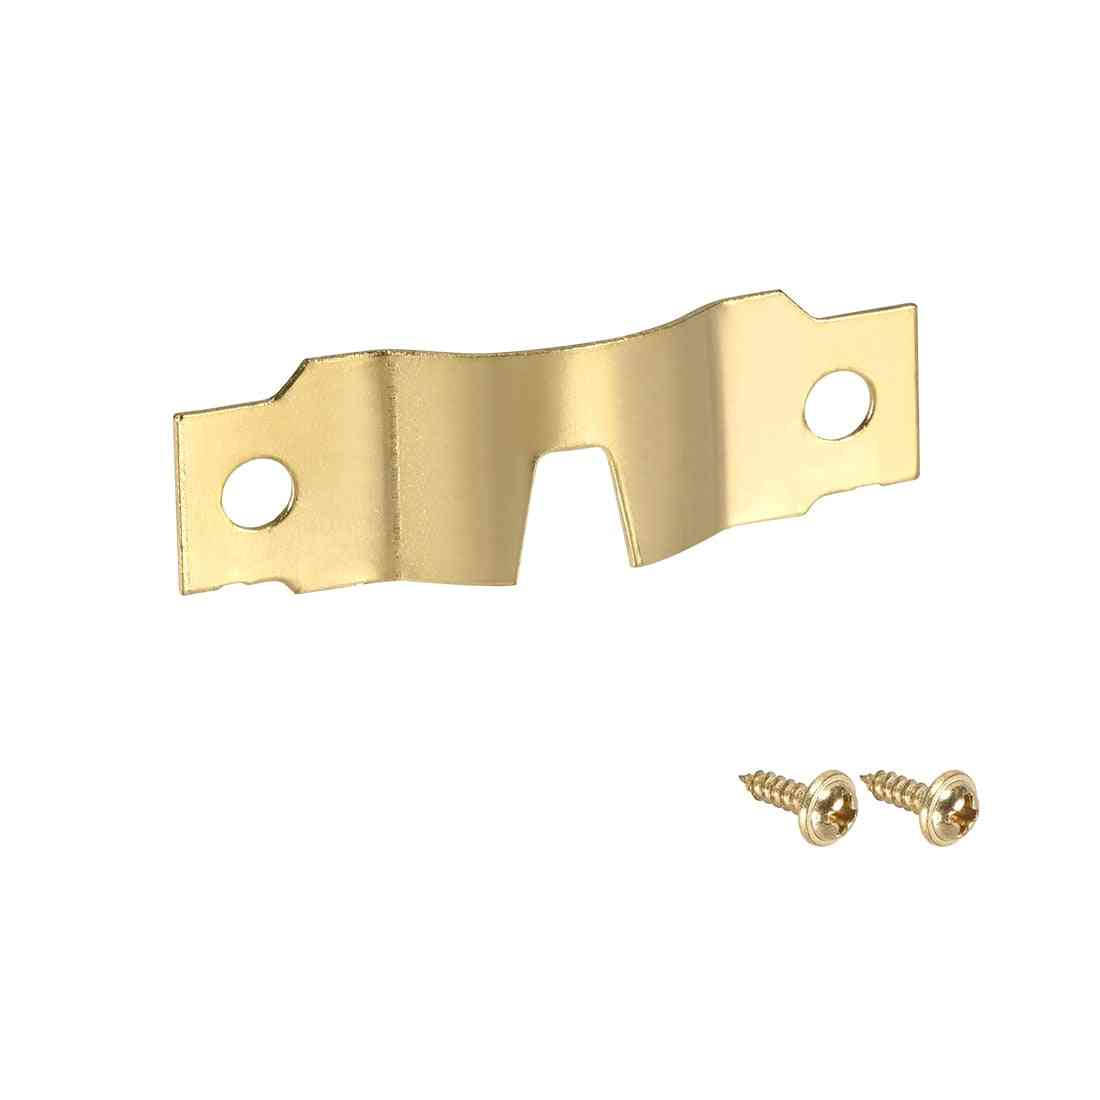 Uxcell Picture Hanger Plate - U Type Frame Hook With Screws